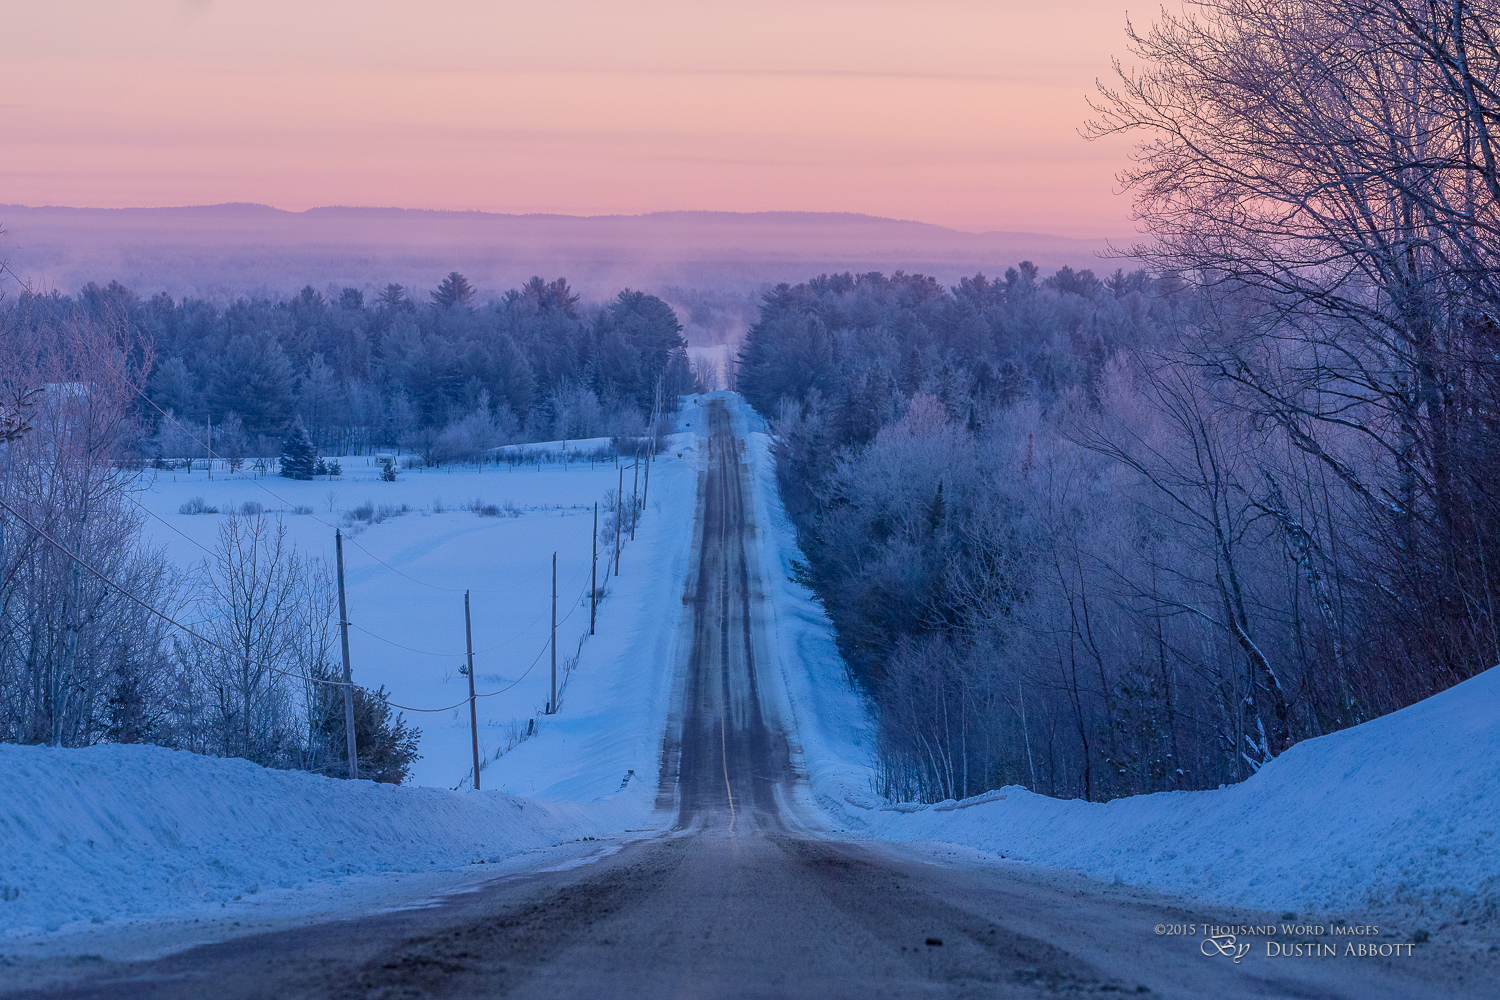 Winter's Splendor #1 - The Road